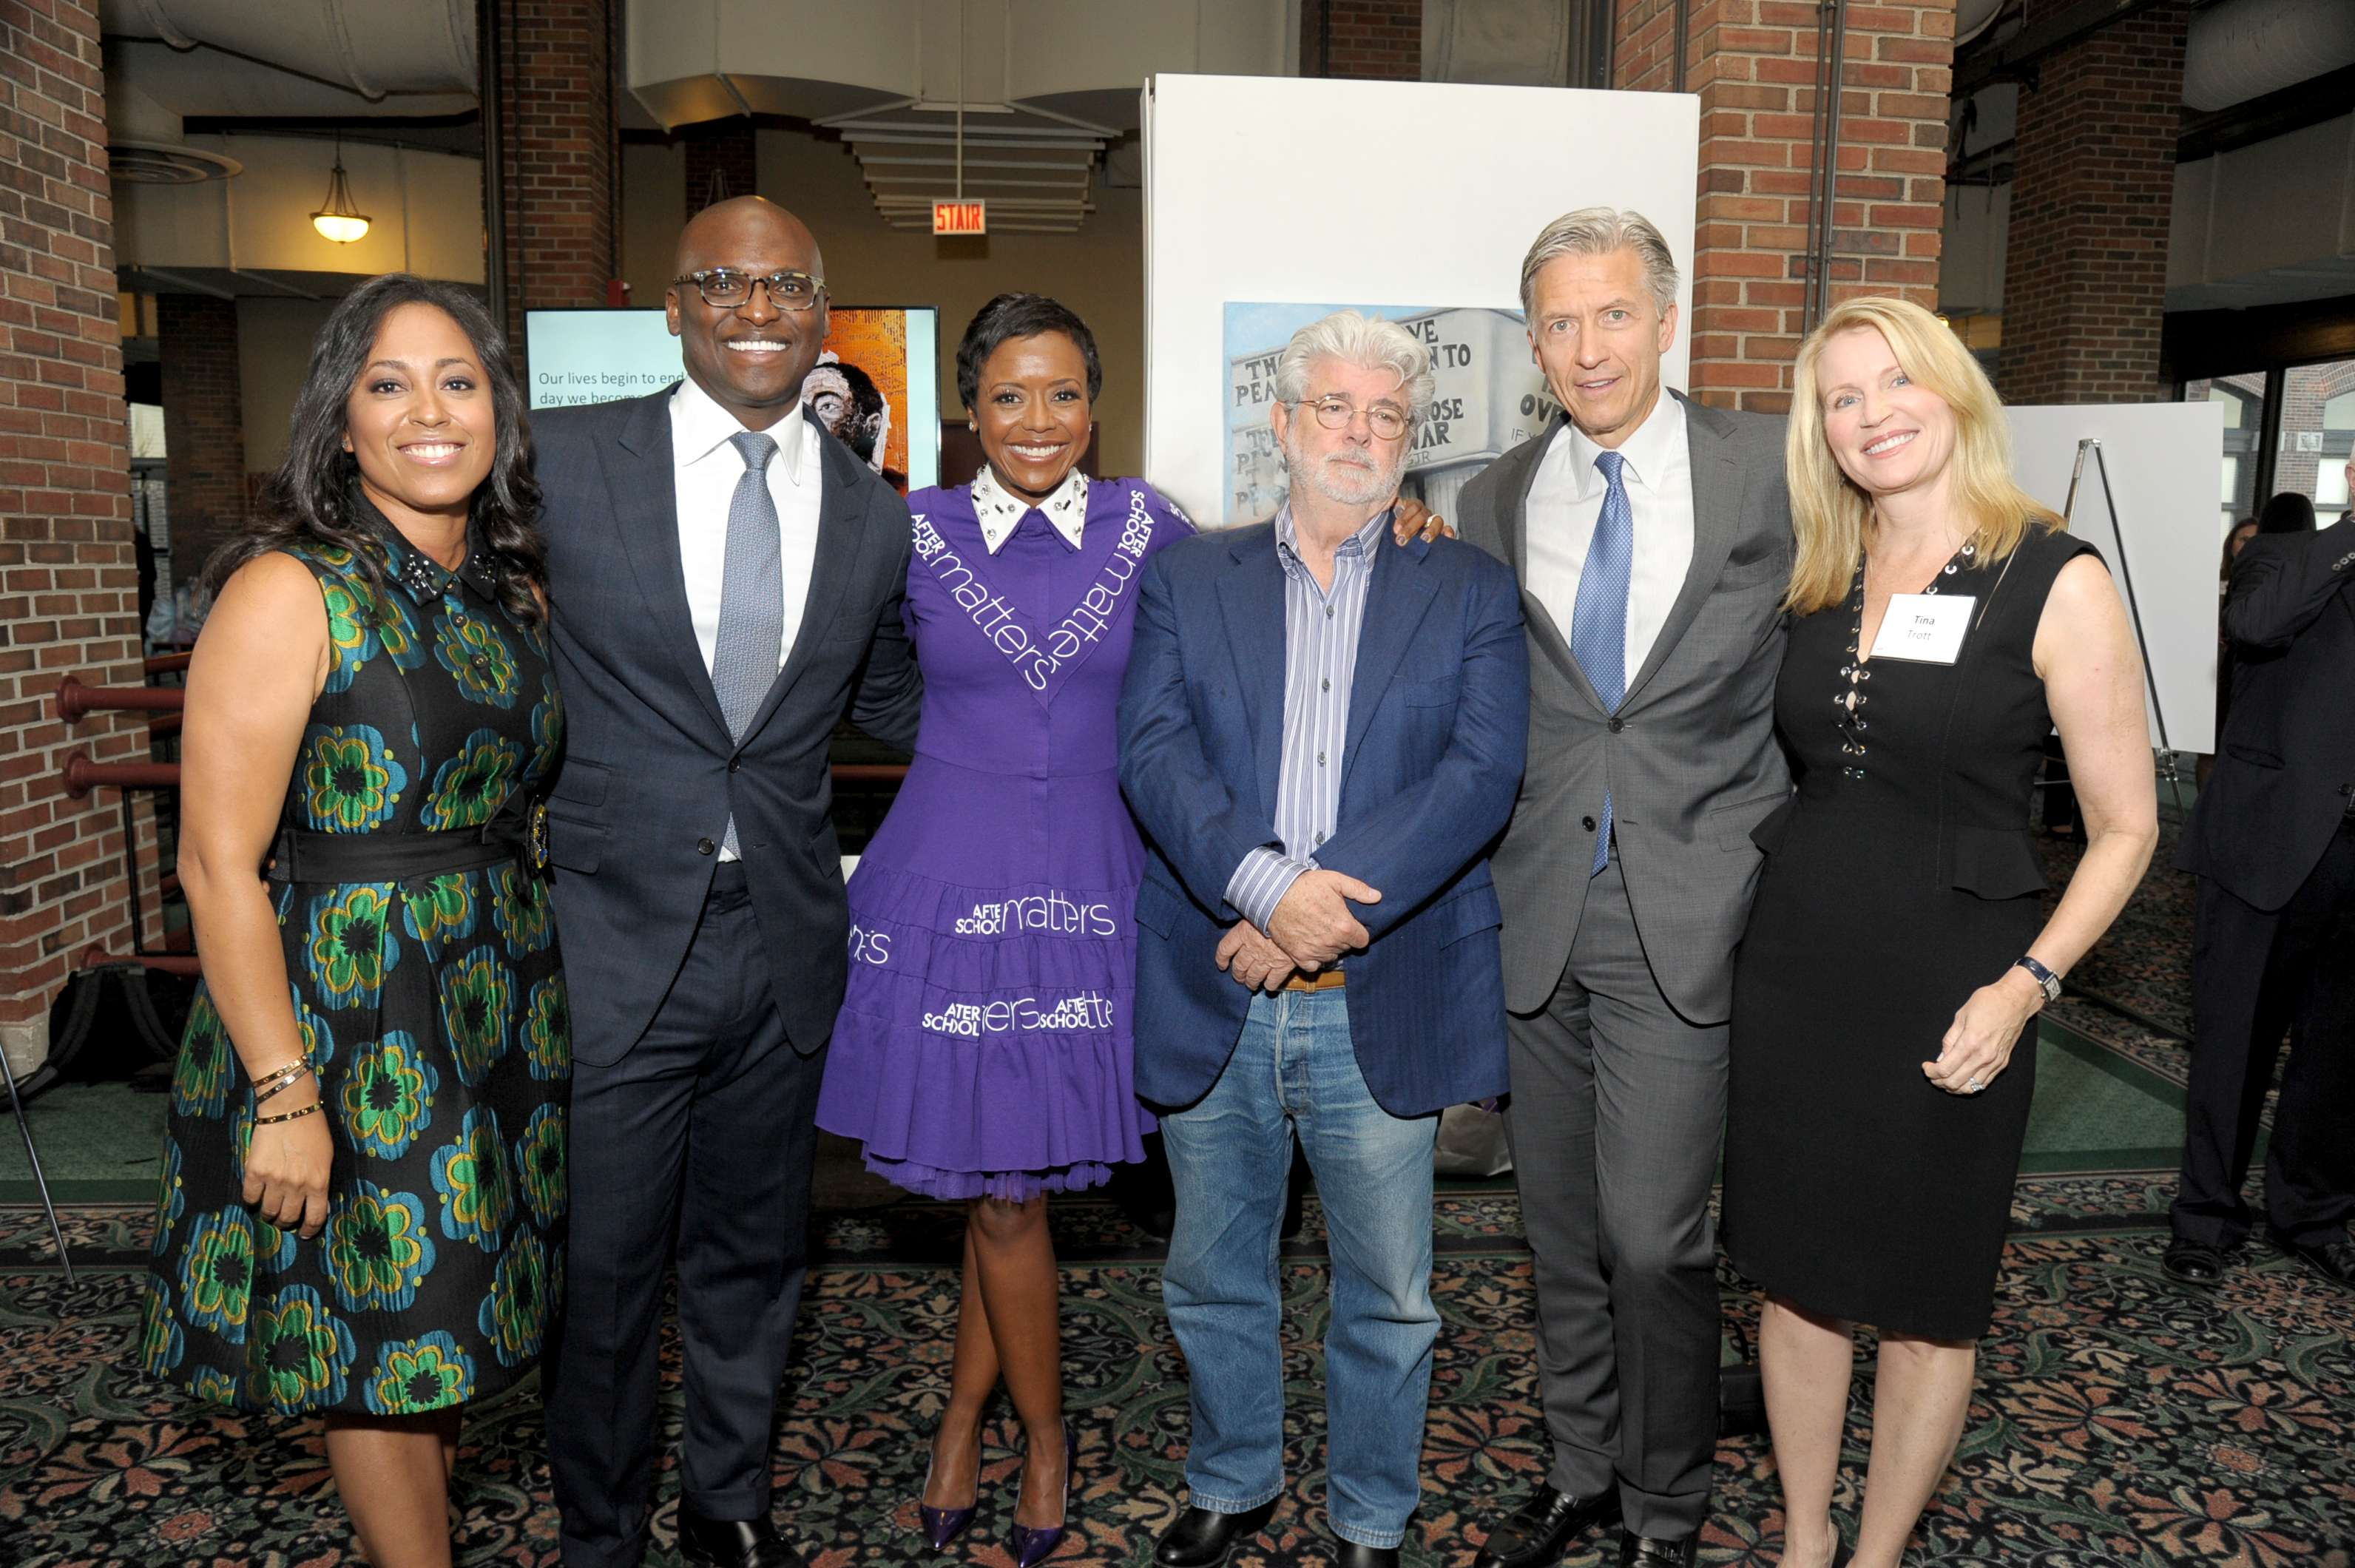 <p>After School Matters Annual Gala Chairs D'Rita and Robbie Robinson, Mellody Hobson and George Lucas, and Tina and Byron Trott at the After School Matters Annual Gala on September 21, 2015. Photo credit: Dan Rest</p>